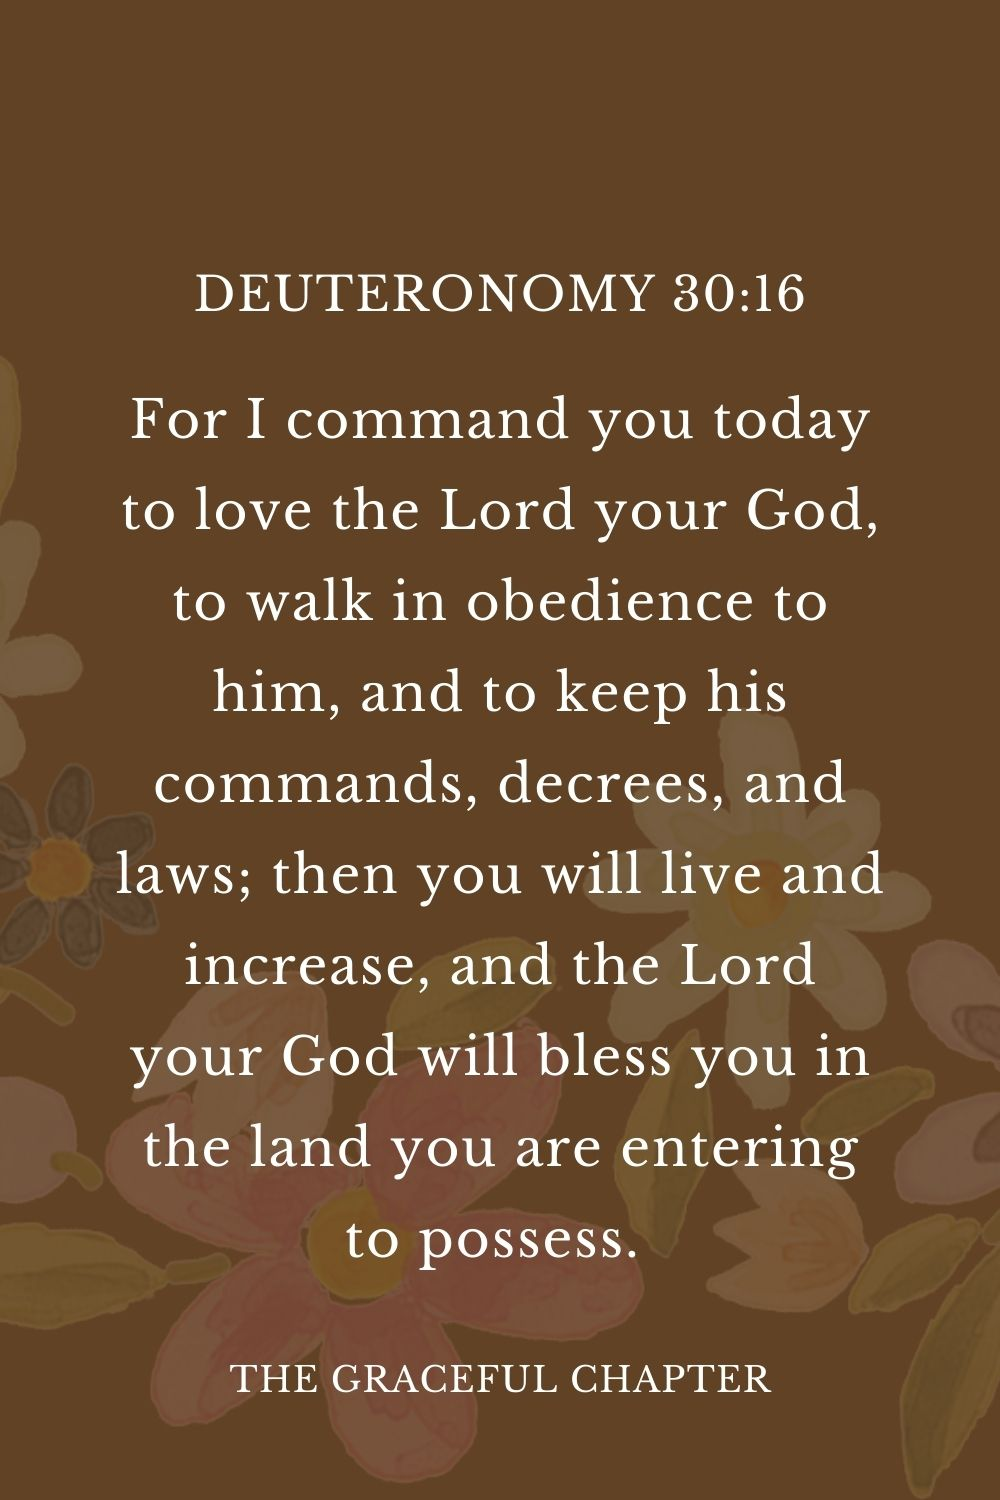 For I command you today to love the Lord your God, to walk in obedience to him, and to keep his commands, decrees, and laws; then you will live and increase, and the Lord your God will bless you in the land you are entering to possess.  Deuteronomy 30:16